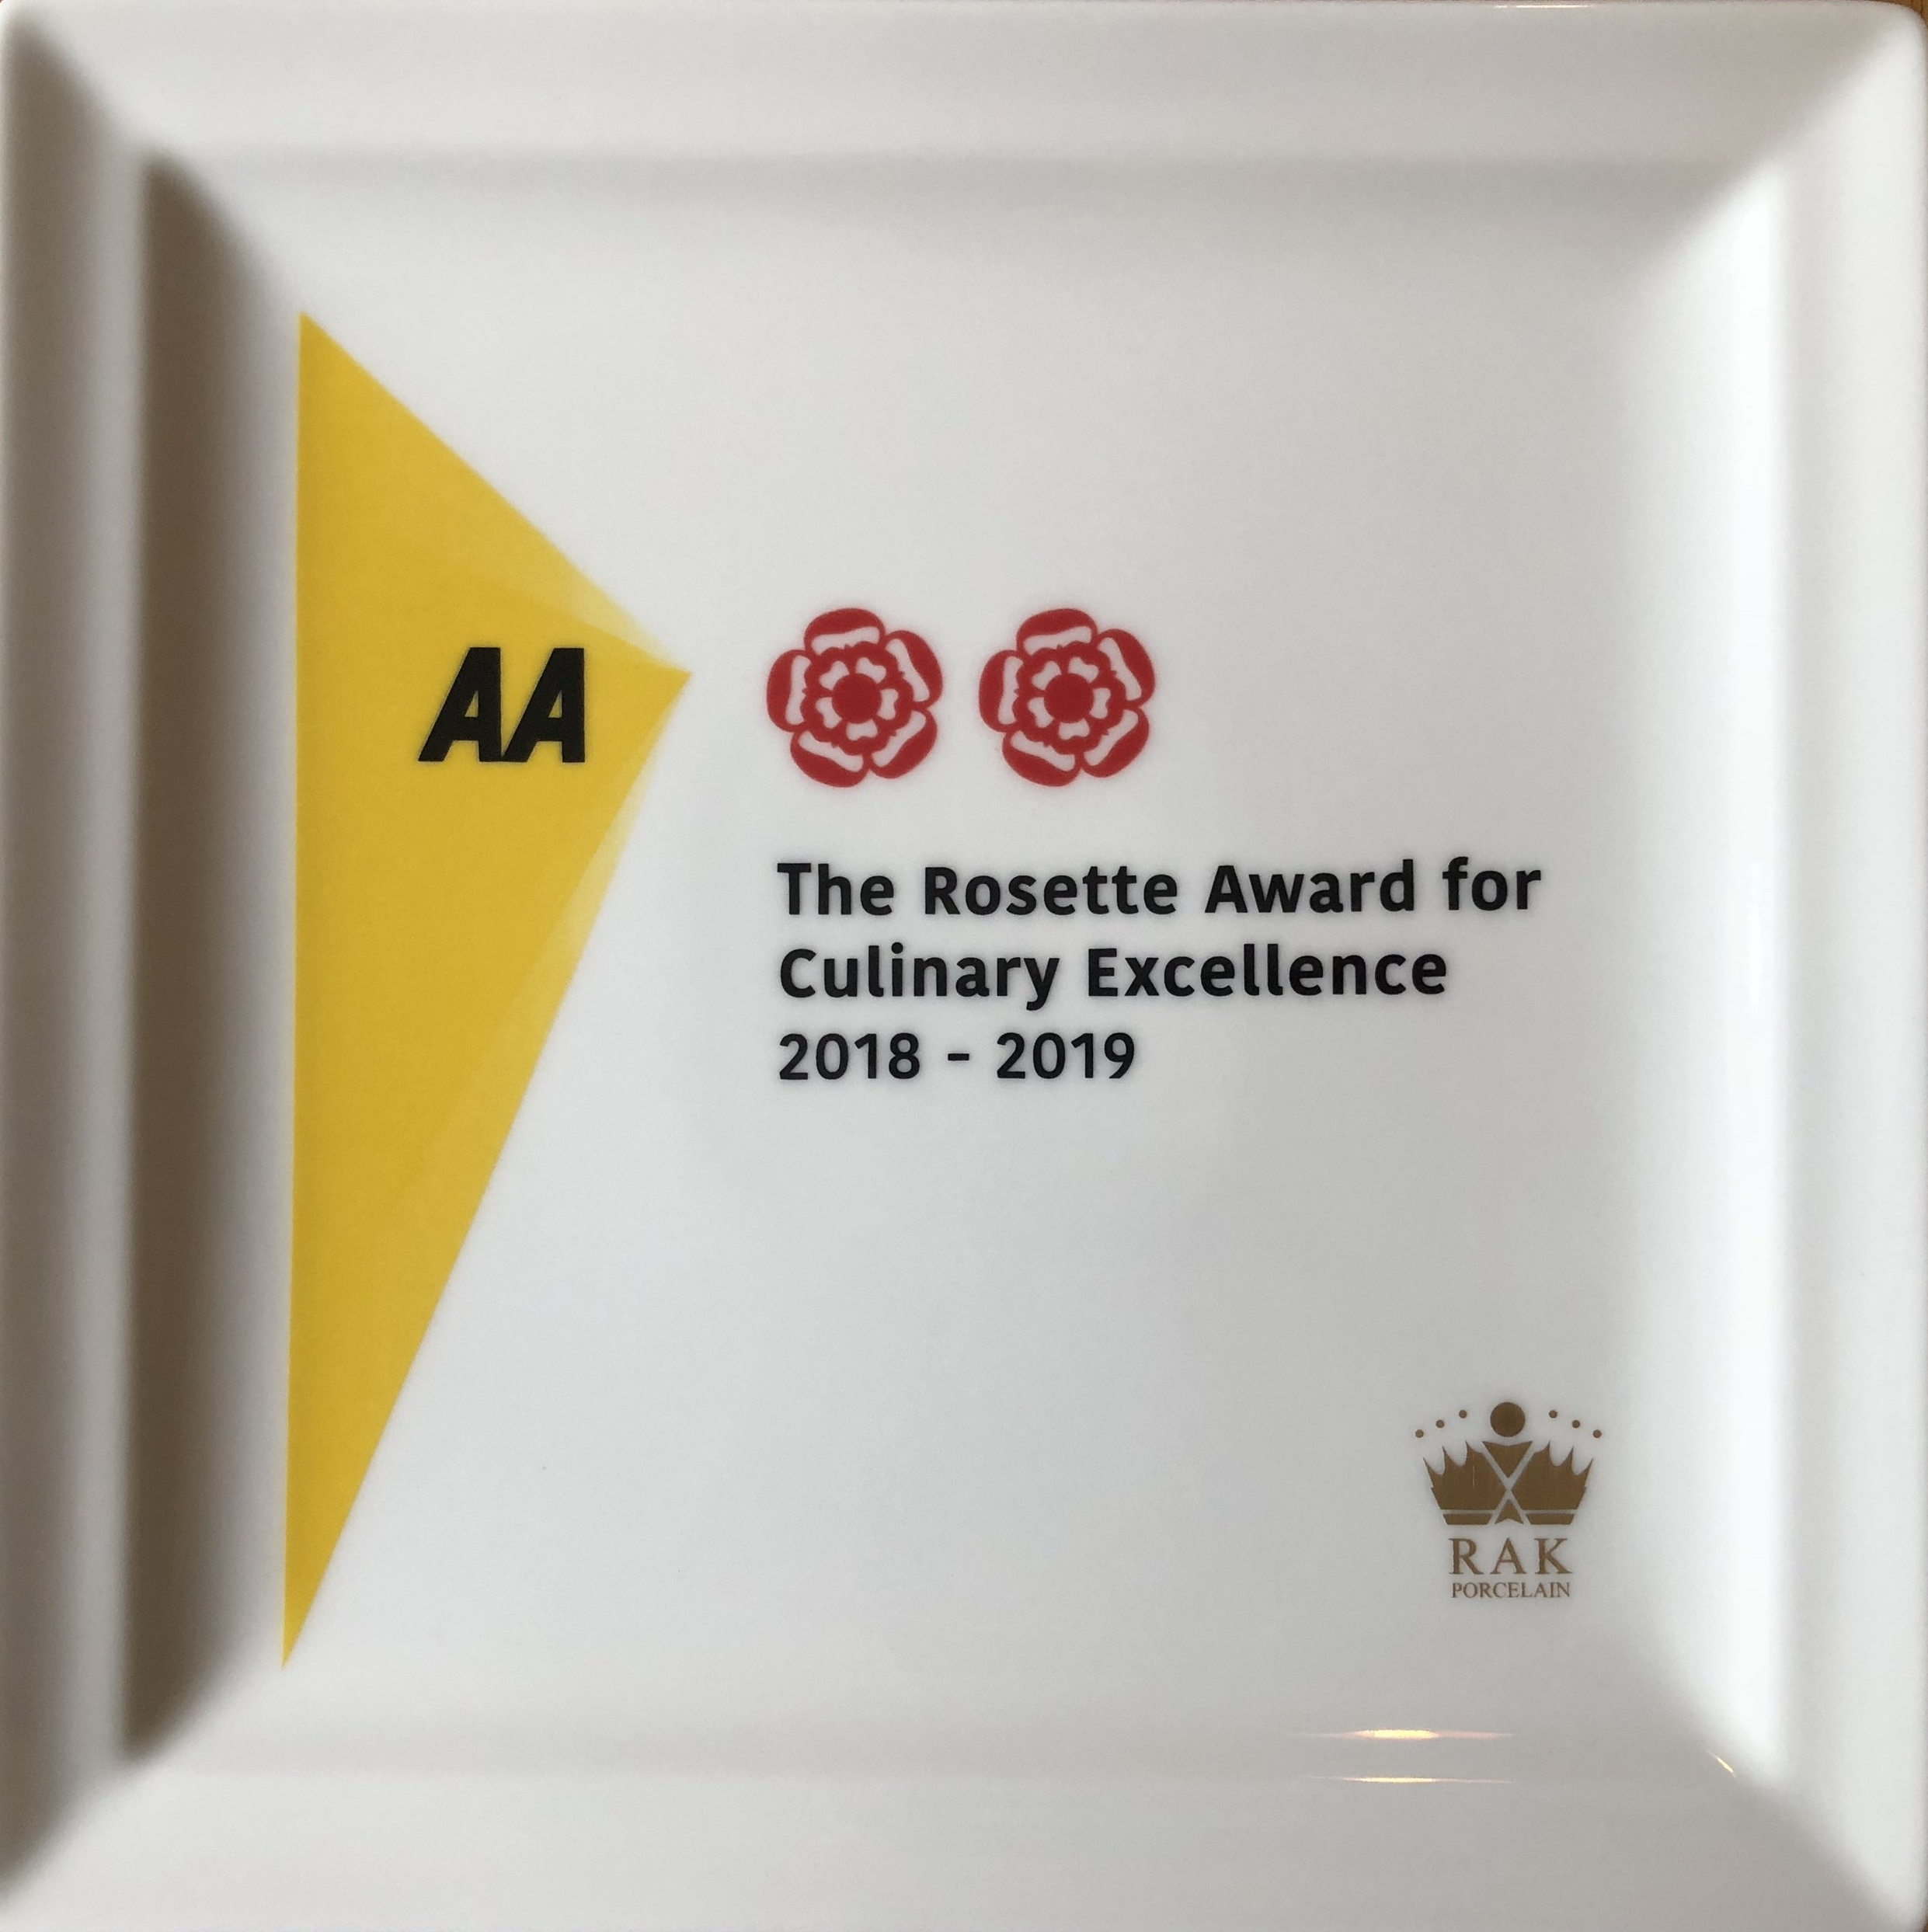 This is the third 2 AA rosette plate that Chef Harry Bullock has won and he is only 21 years old.